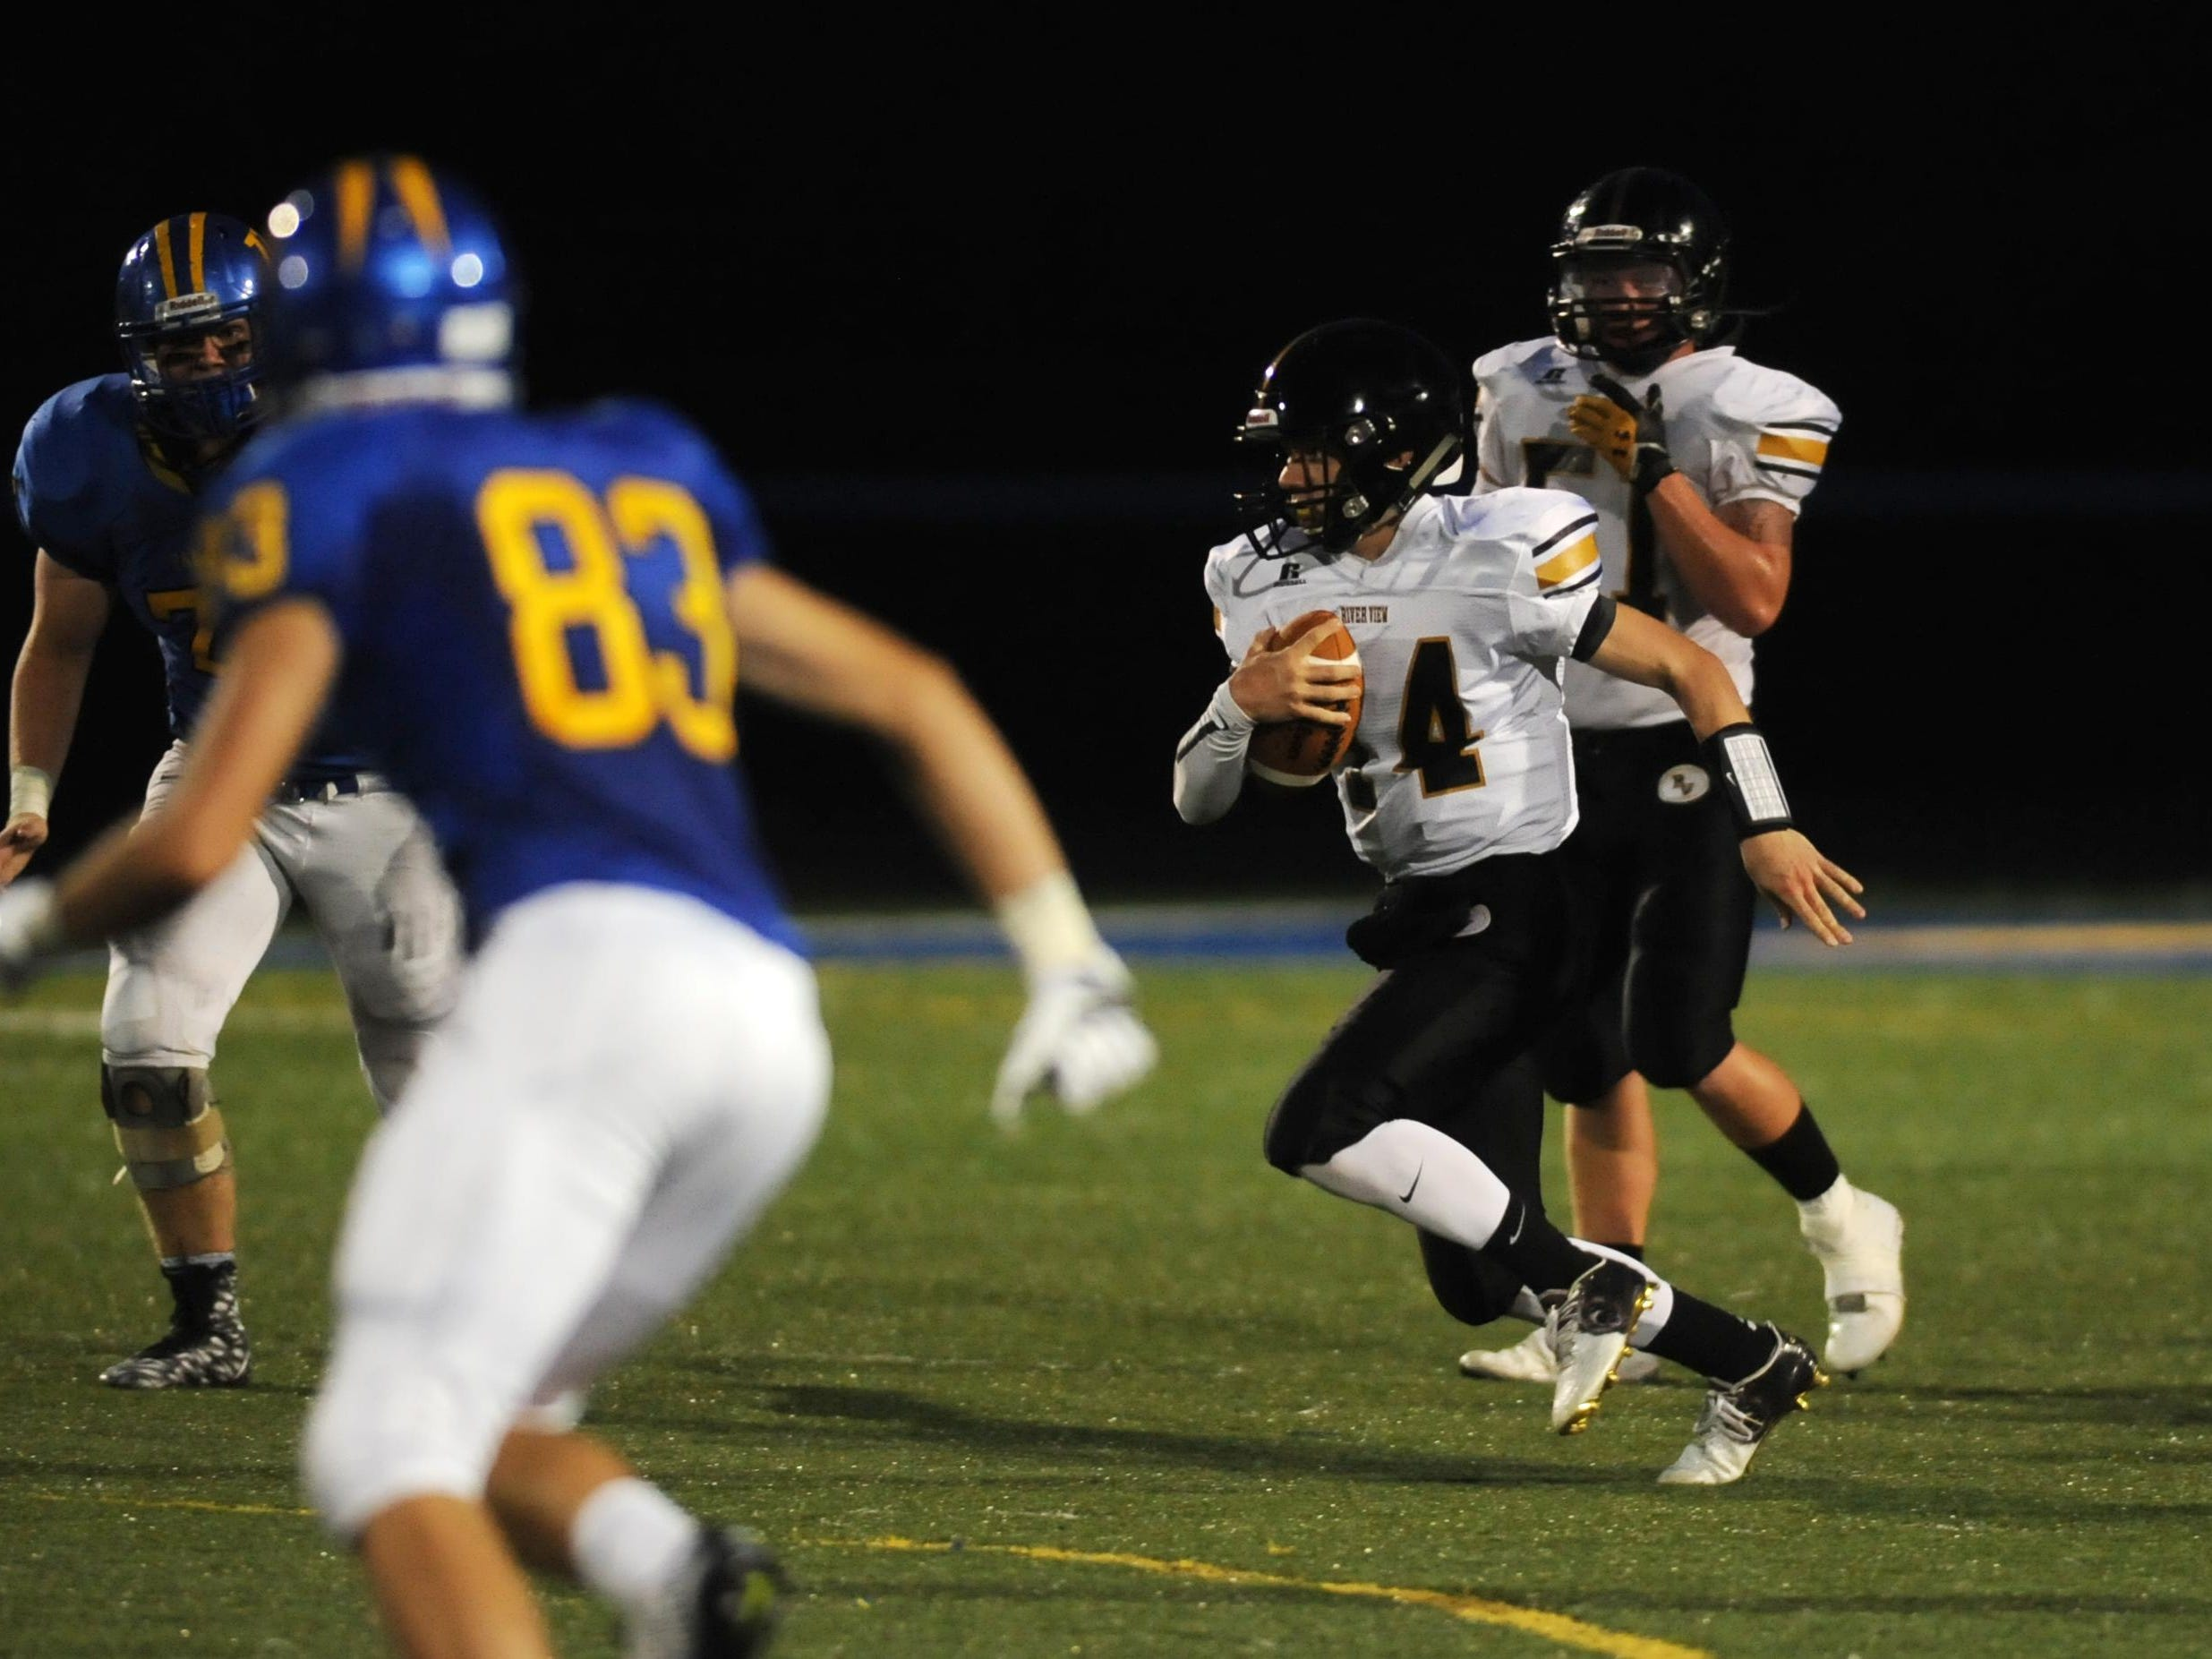 River View's Caden Croft carries the ball against Maysville Friday night.